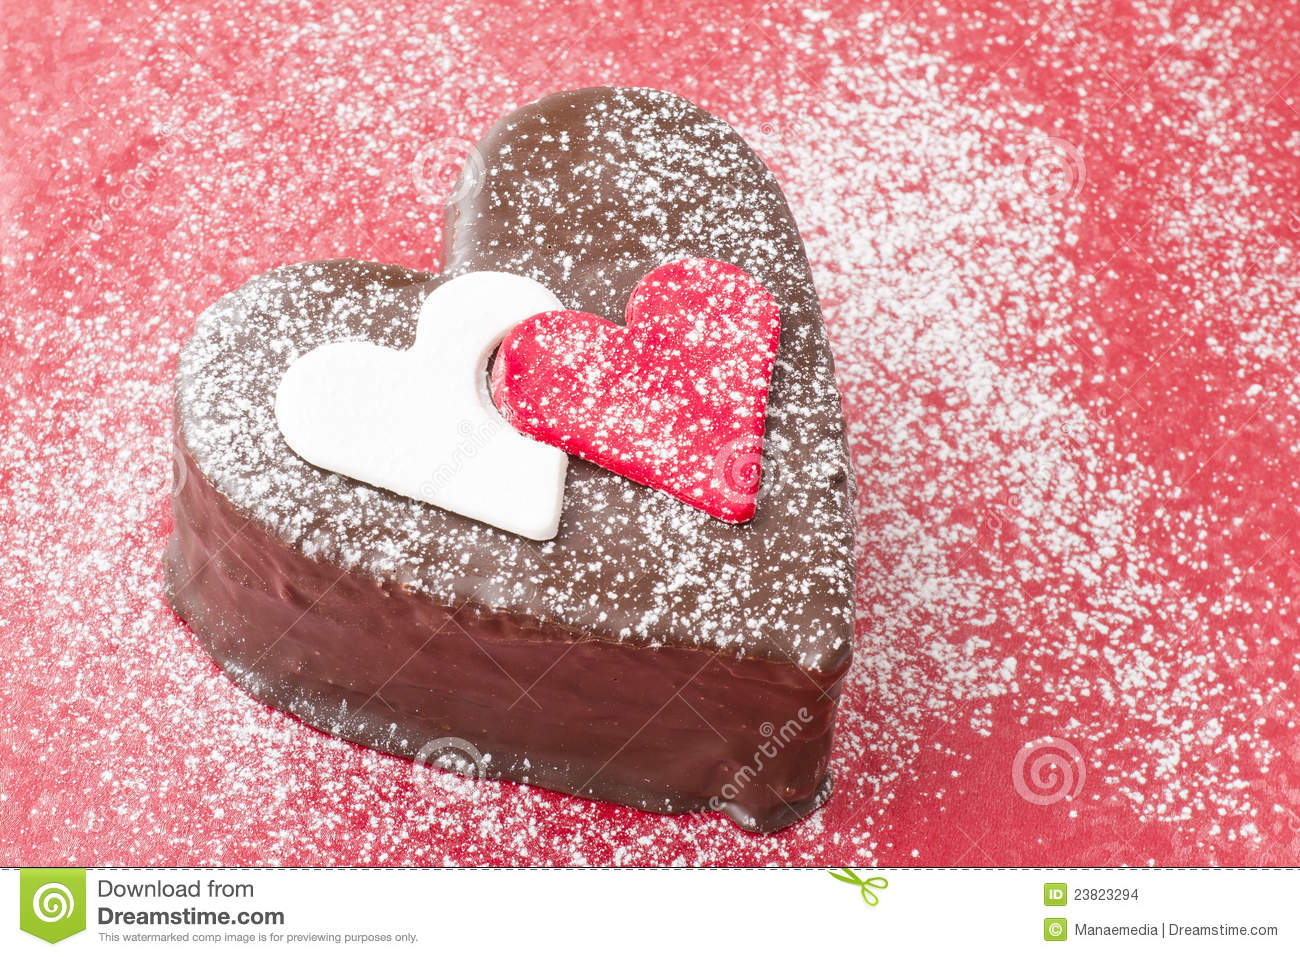 Heart Shaped Cake Stock Photos : Heart Shaped Slice Of A Chocolate-cake Stock Photo - Image ...